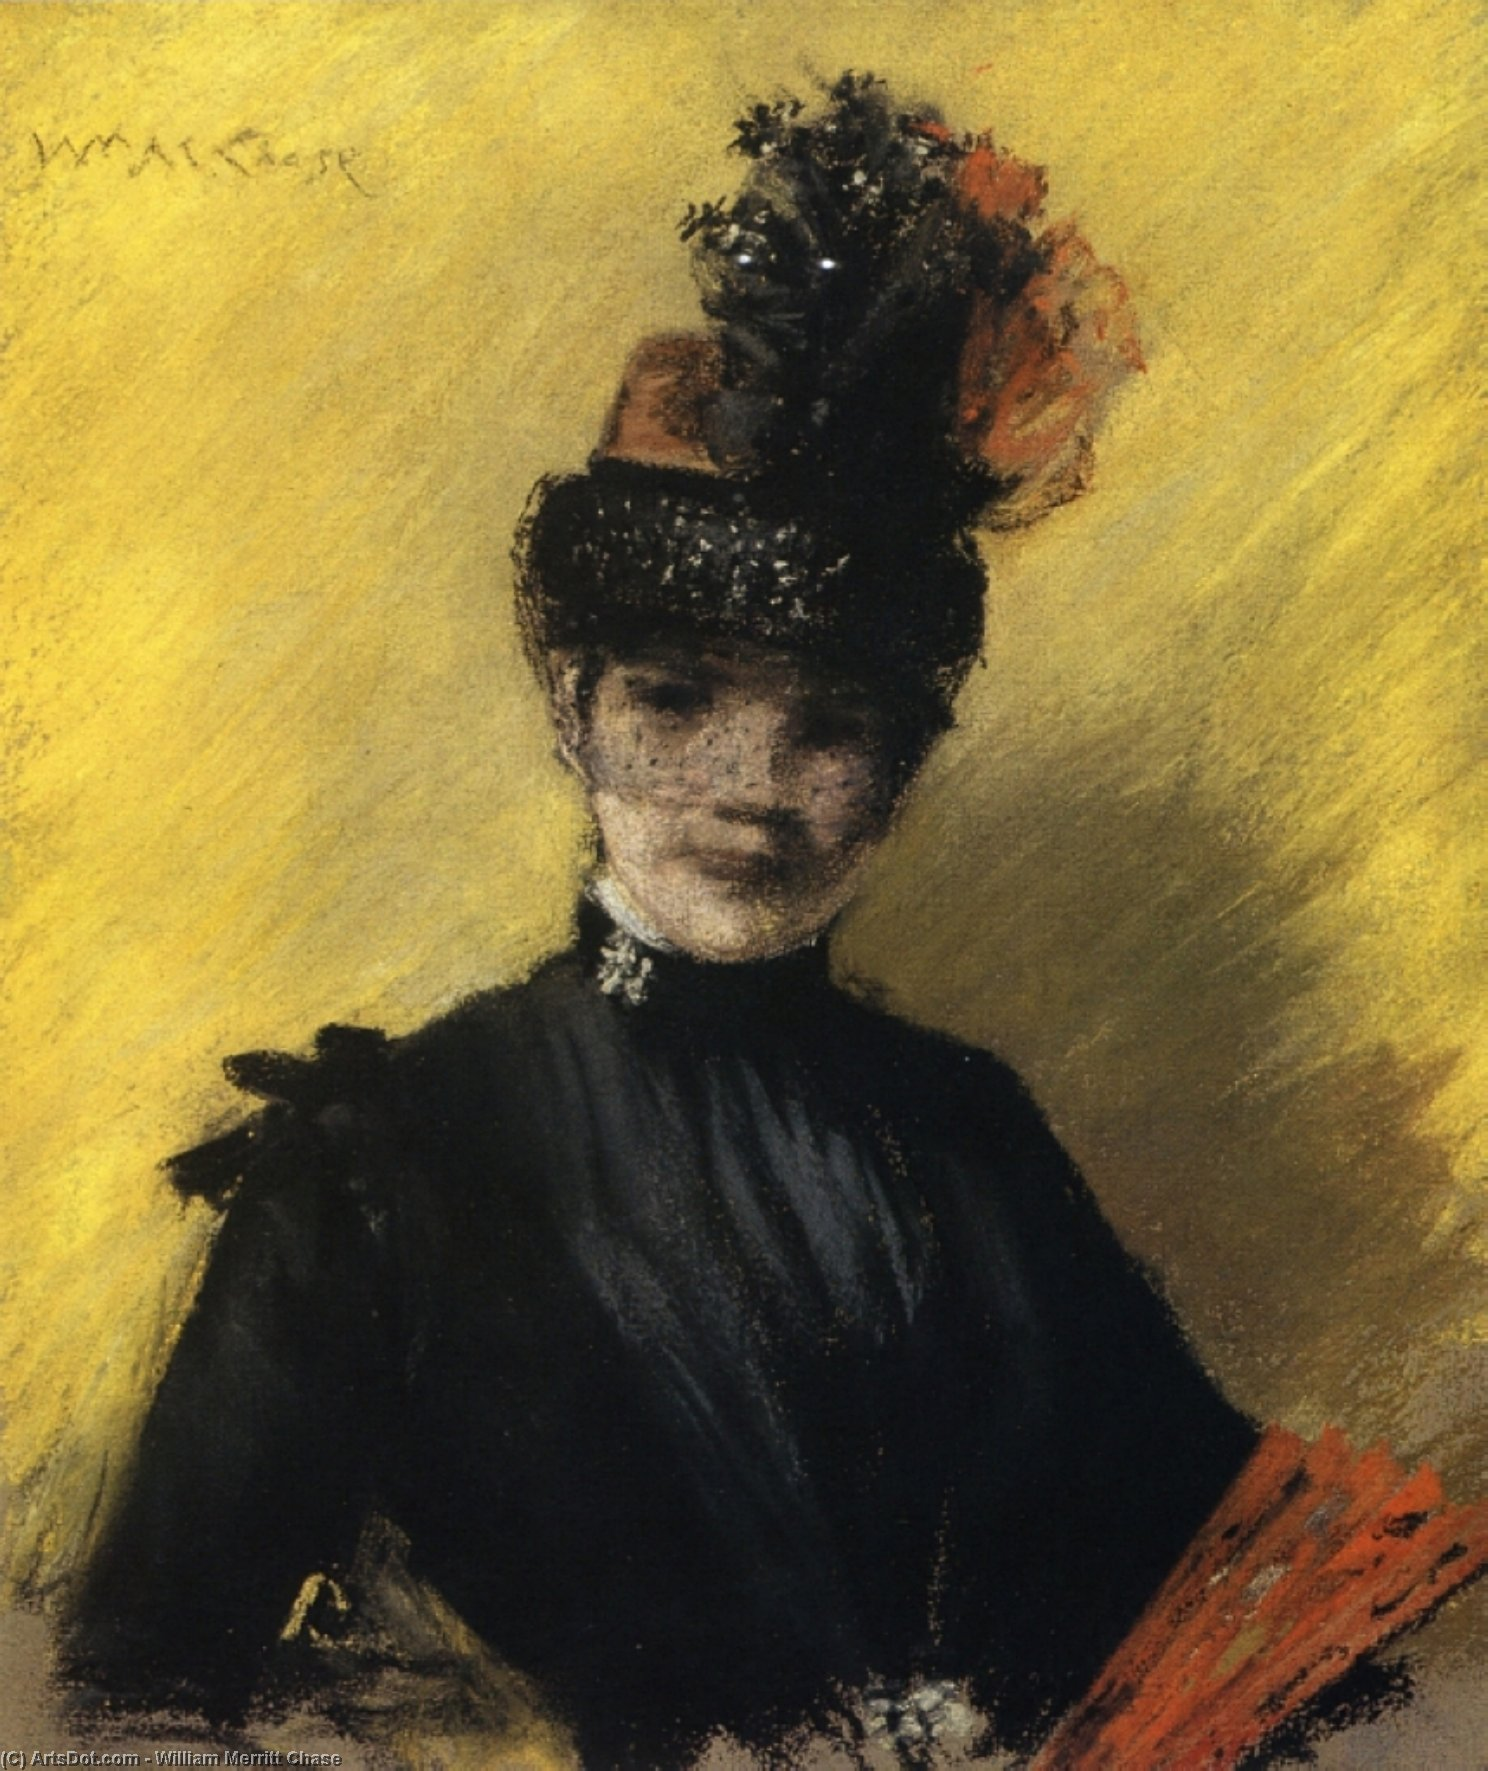 の研究 黒 に反対して Yello, 1886 バイ William Merritt Chase (1849-1916, United States)